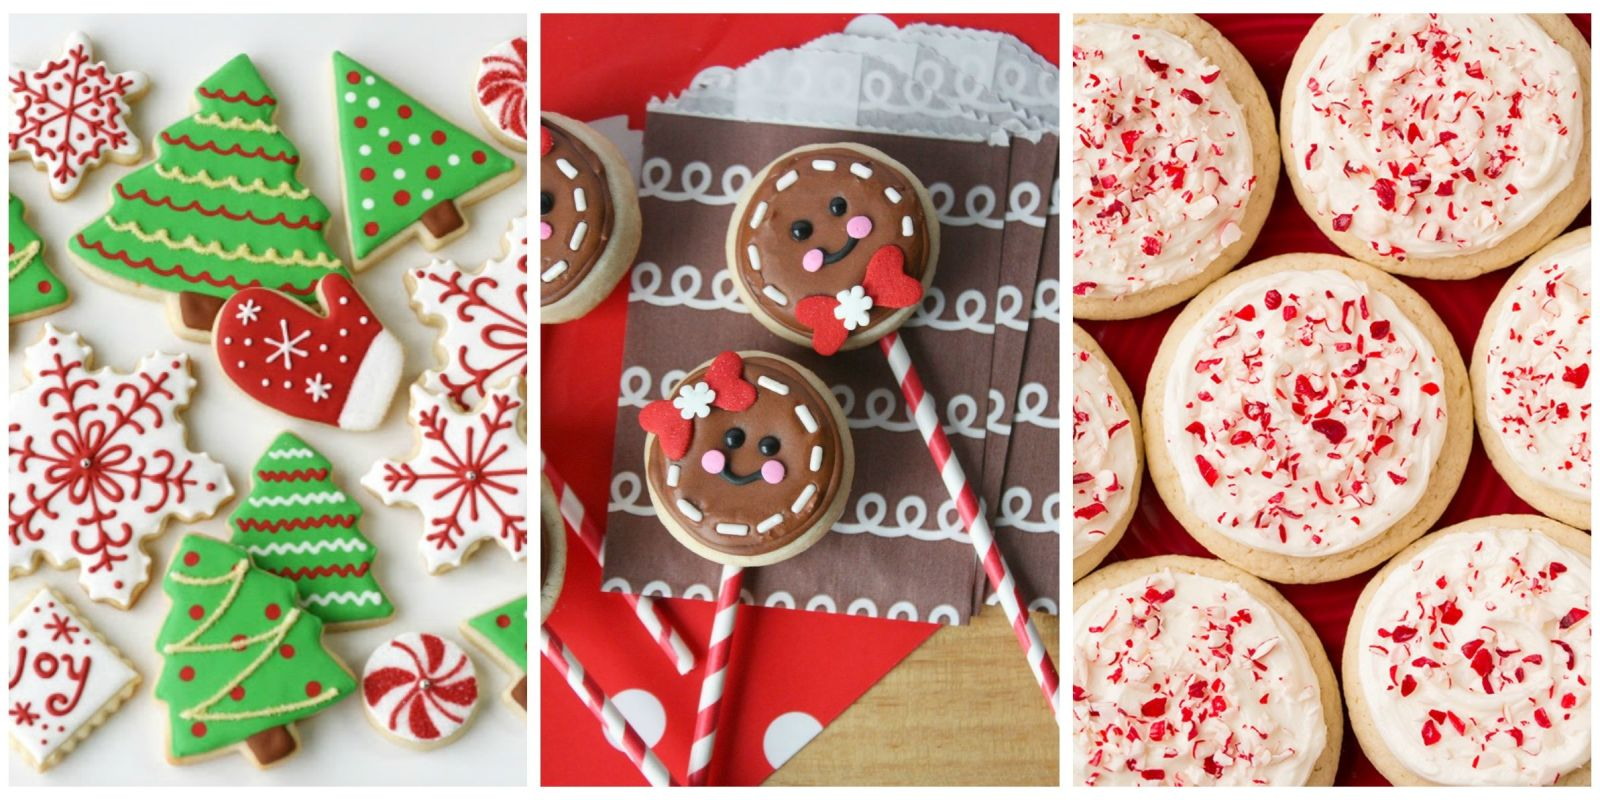 Sugar Cookie Decorating Ideas For Christmas   Elitflat 25 Easy Christmas Sugar Cookies Recipes Decorating